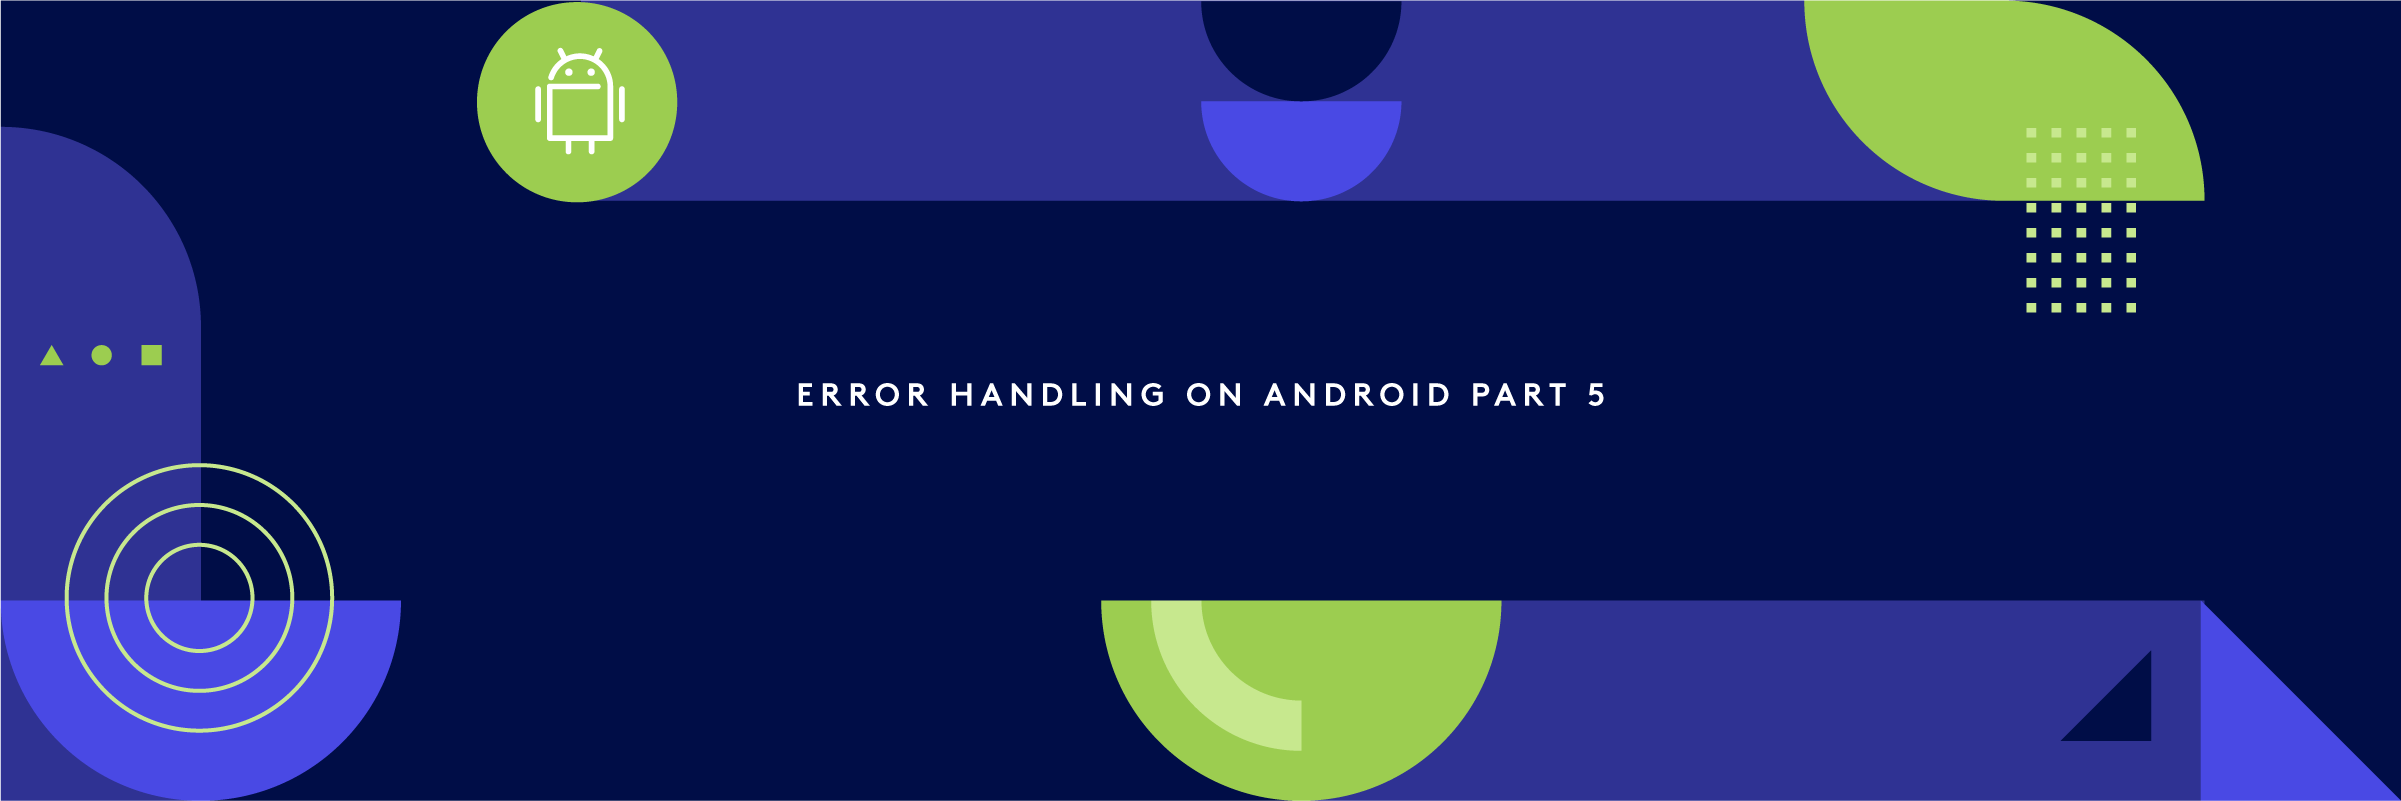 Error handling on Android part 5: handling obfuscation and